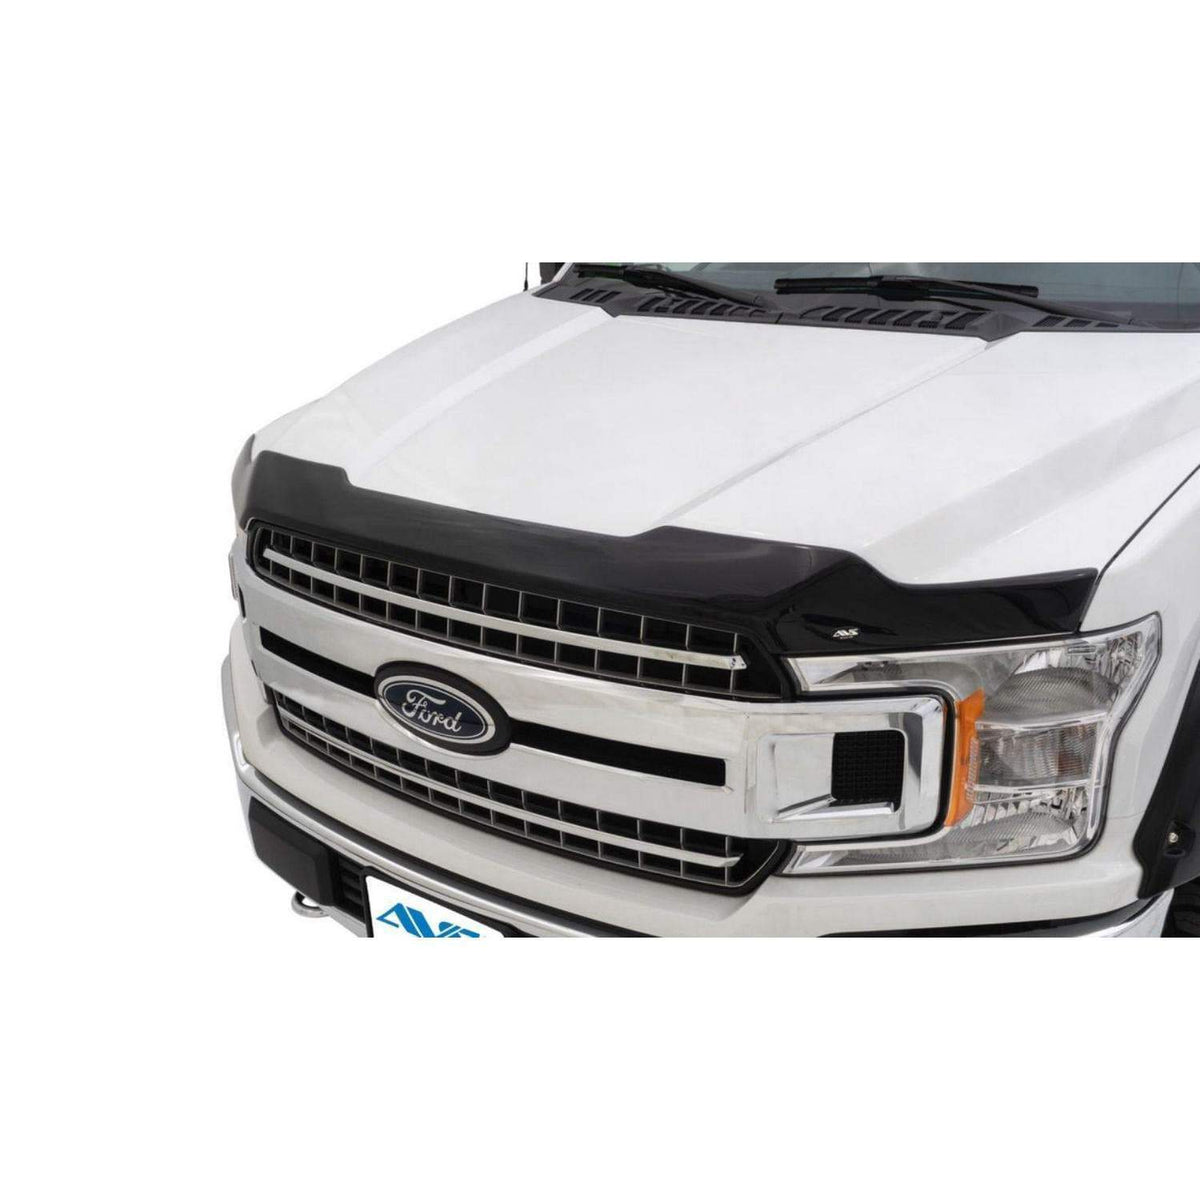 AVS Aeroskin Flush Mount Dark Smoke Hood Protector | 2017-2020 Ford F-150 Raptor (322127)